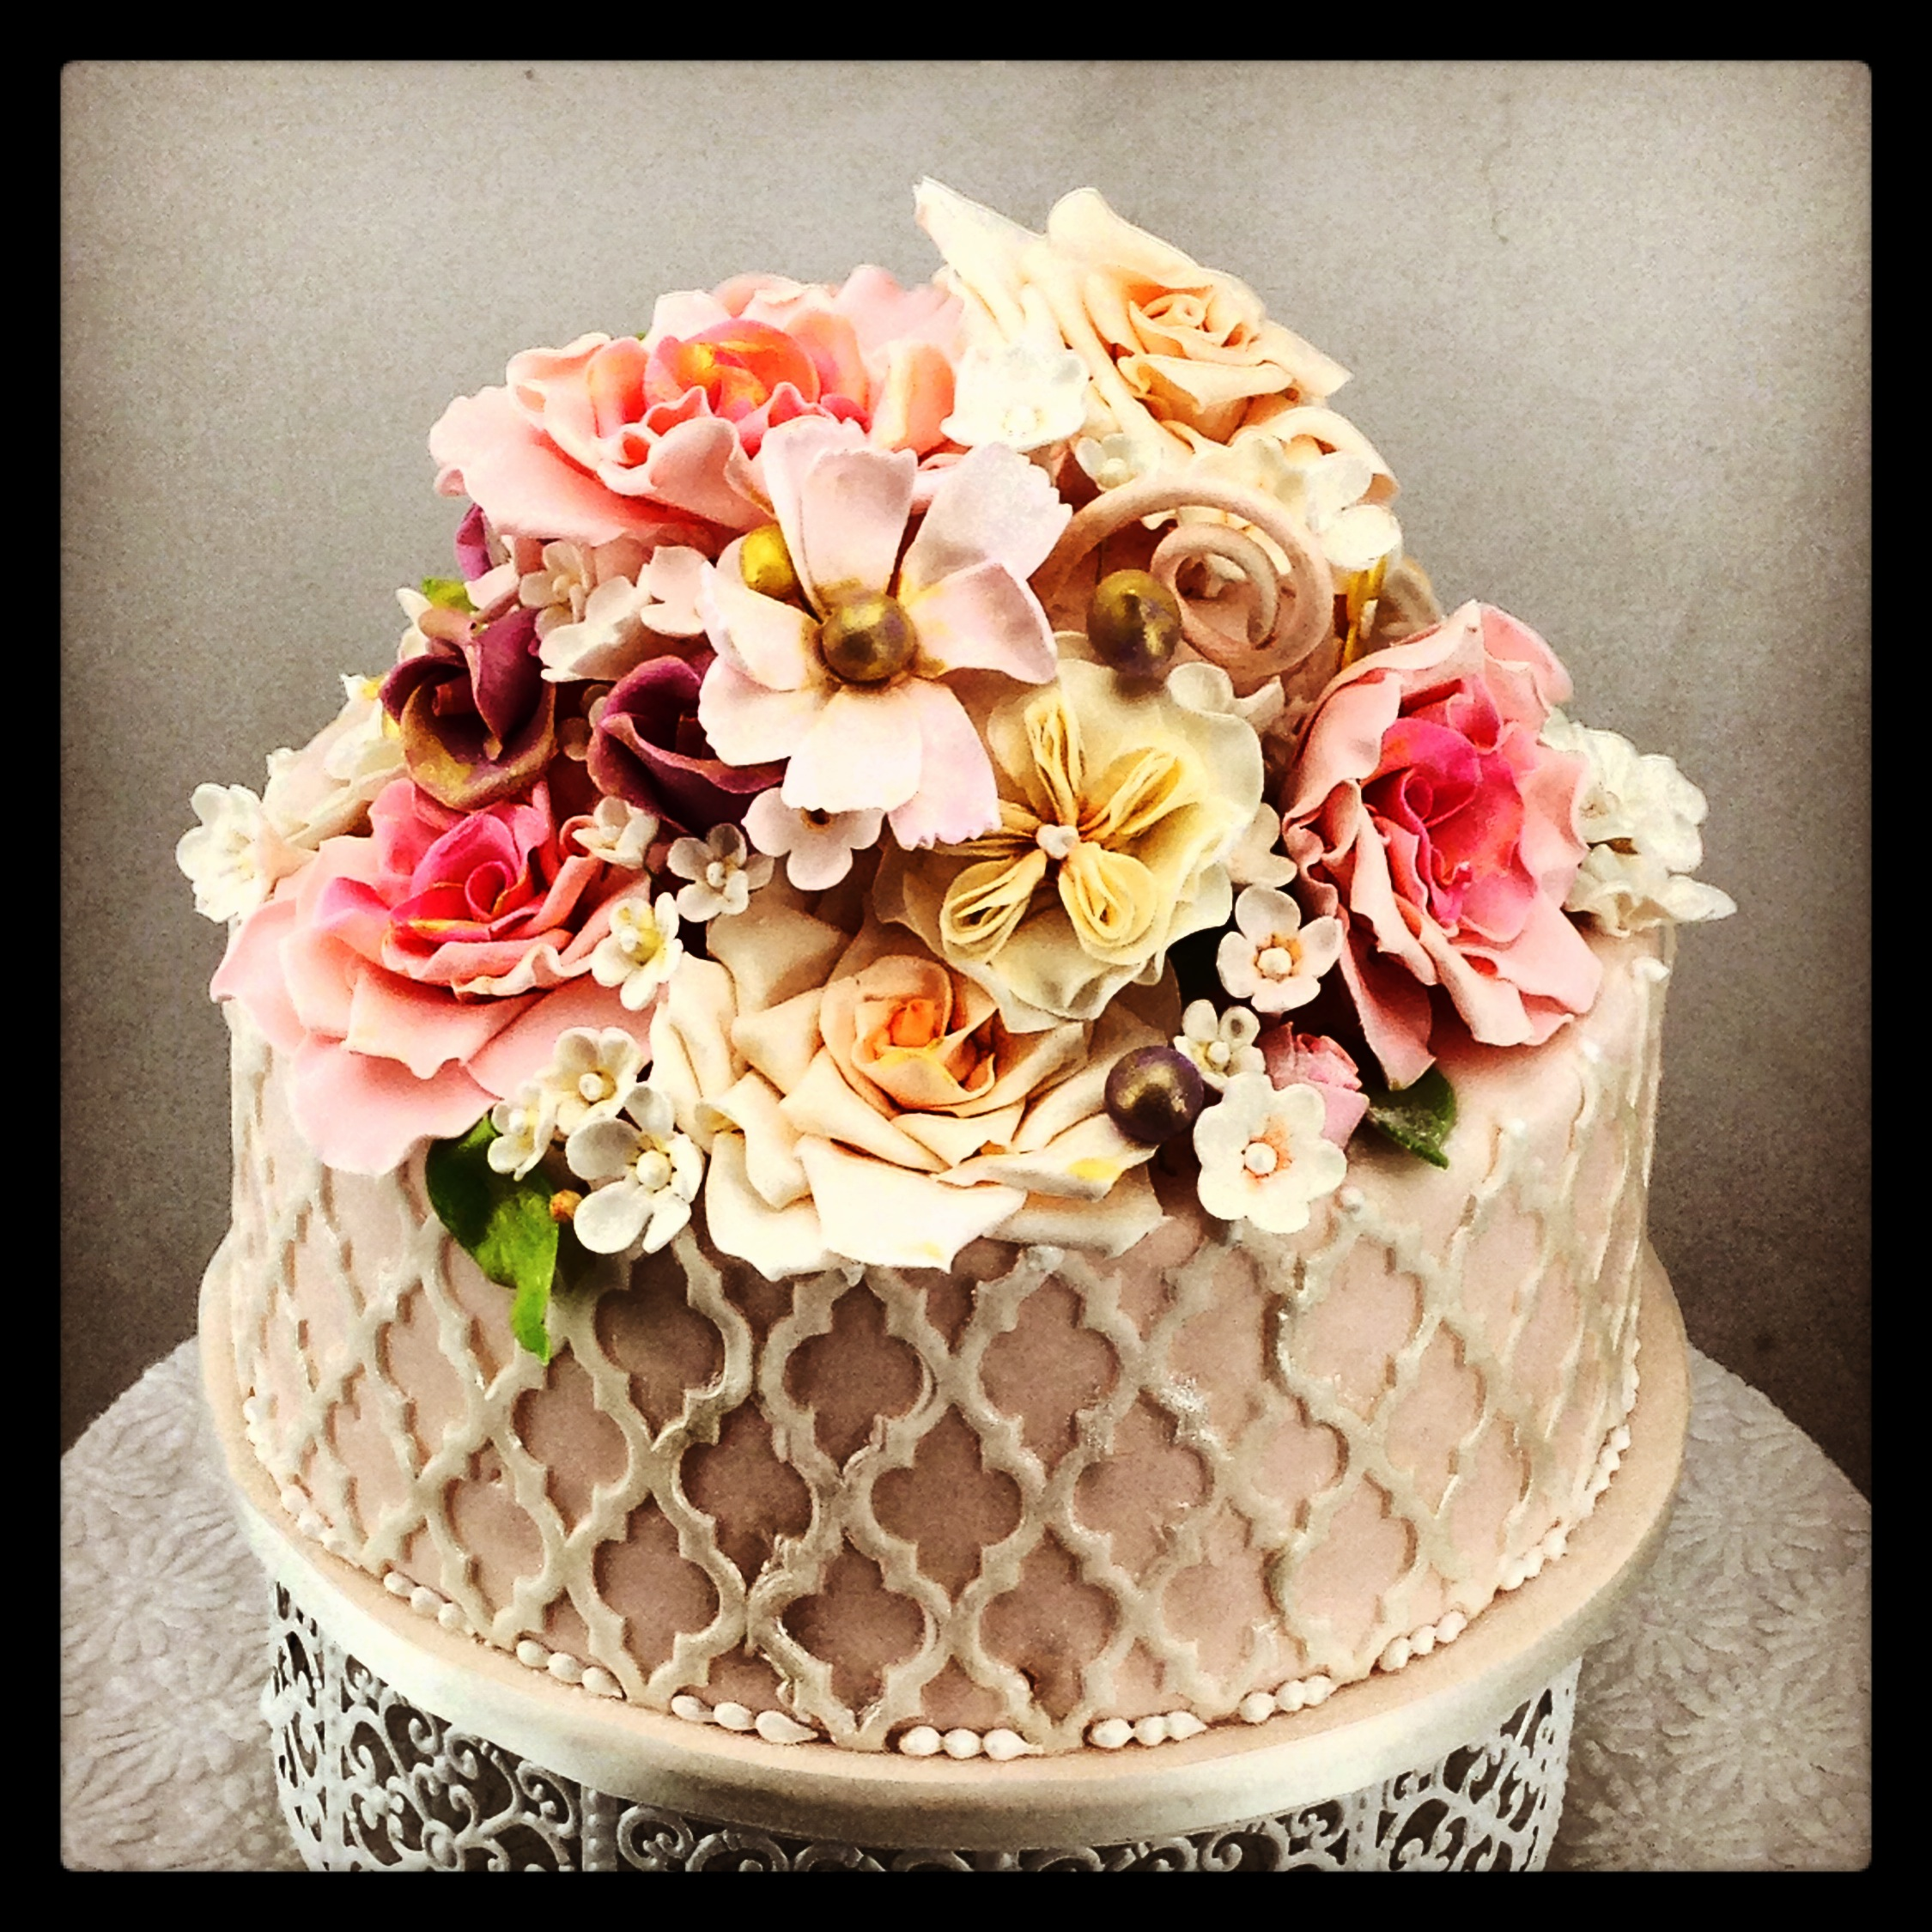 Mila's wedding cake instagram.jpg